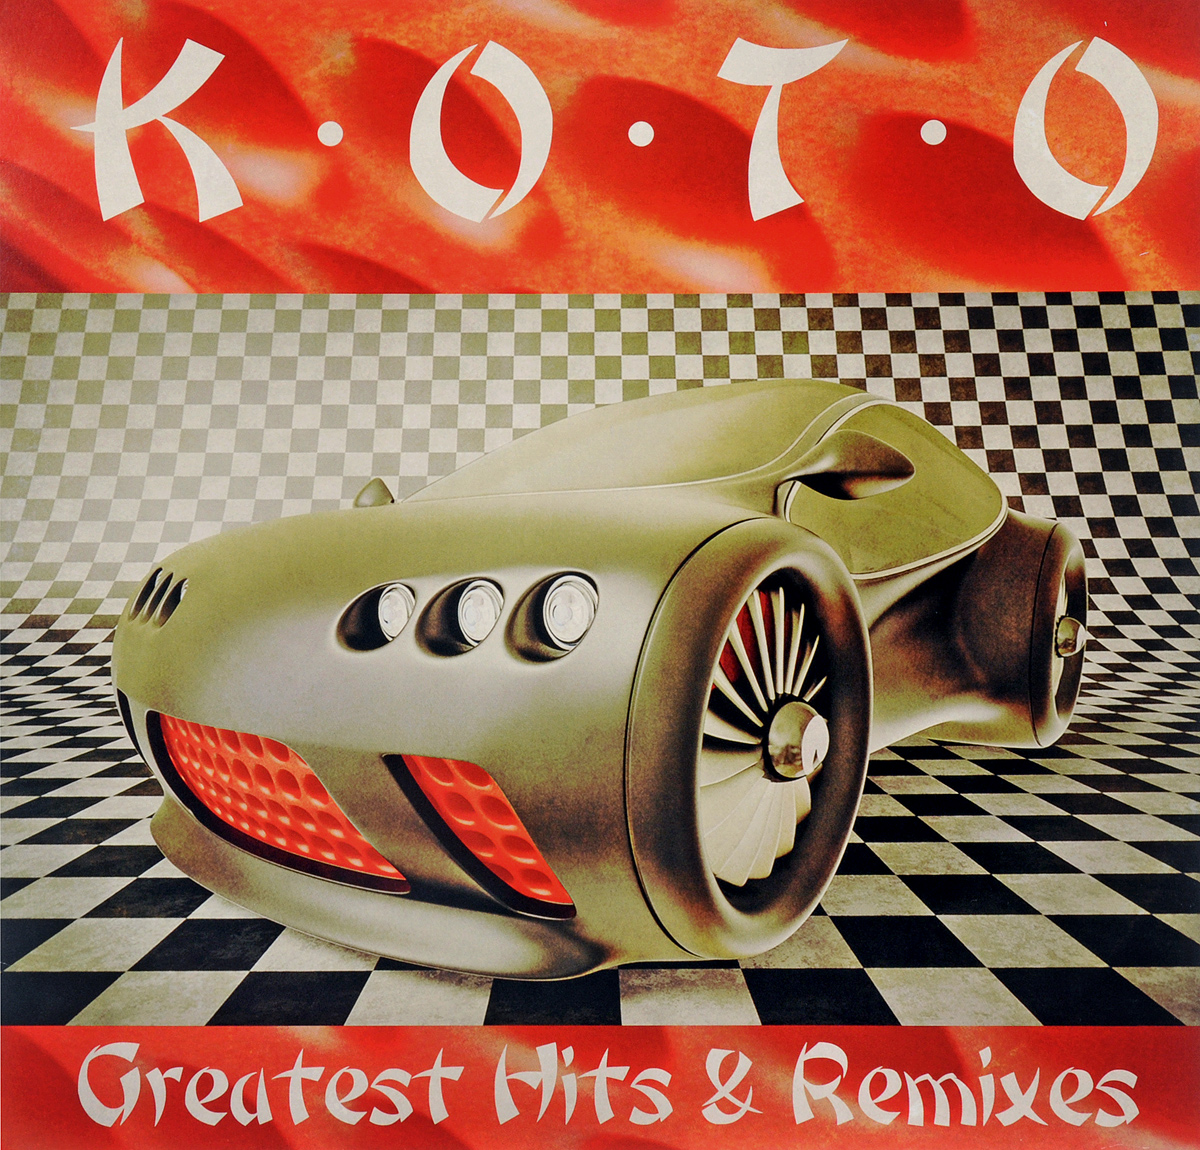 Koto Koto. Greatest Hits & Remixes (LP)